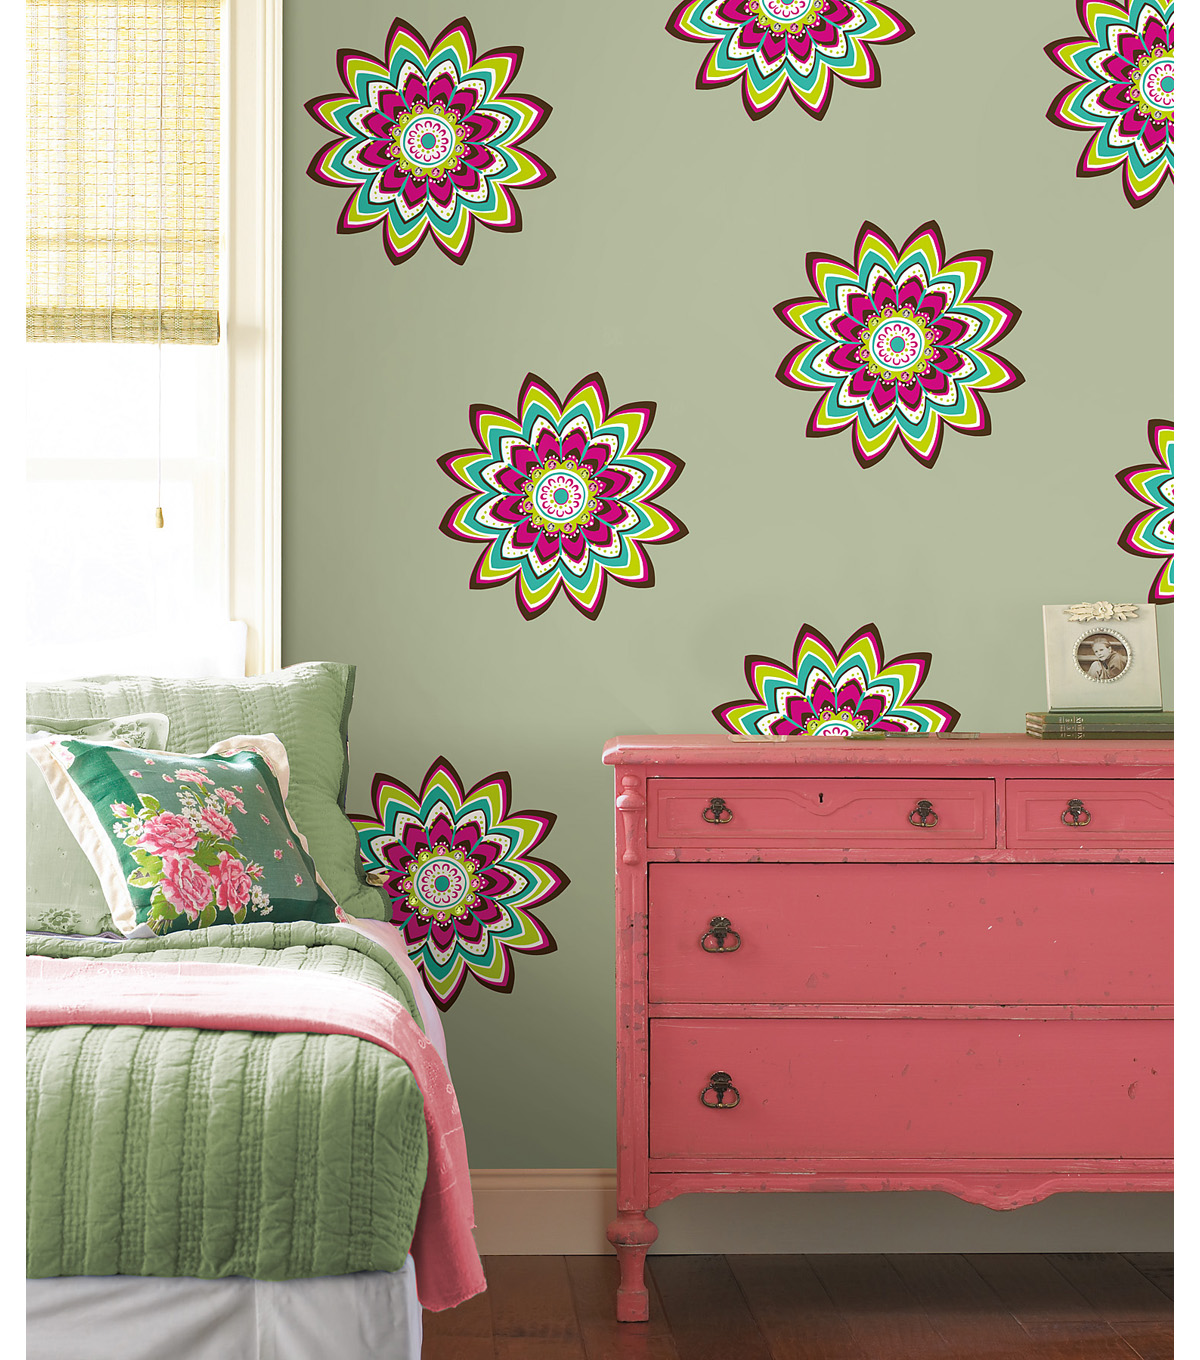 Wall Pops Zsa Zsa Jeweled Dot Decals, 8 Piece Set